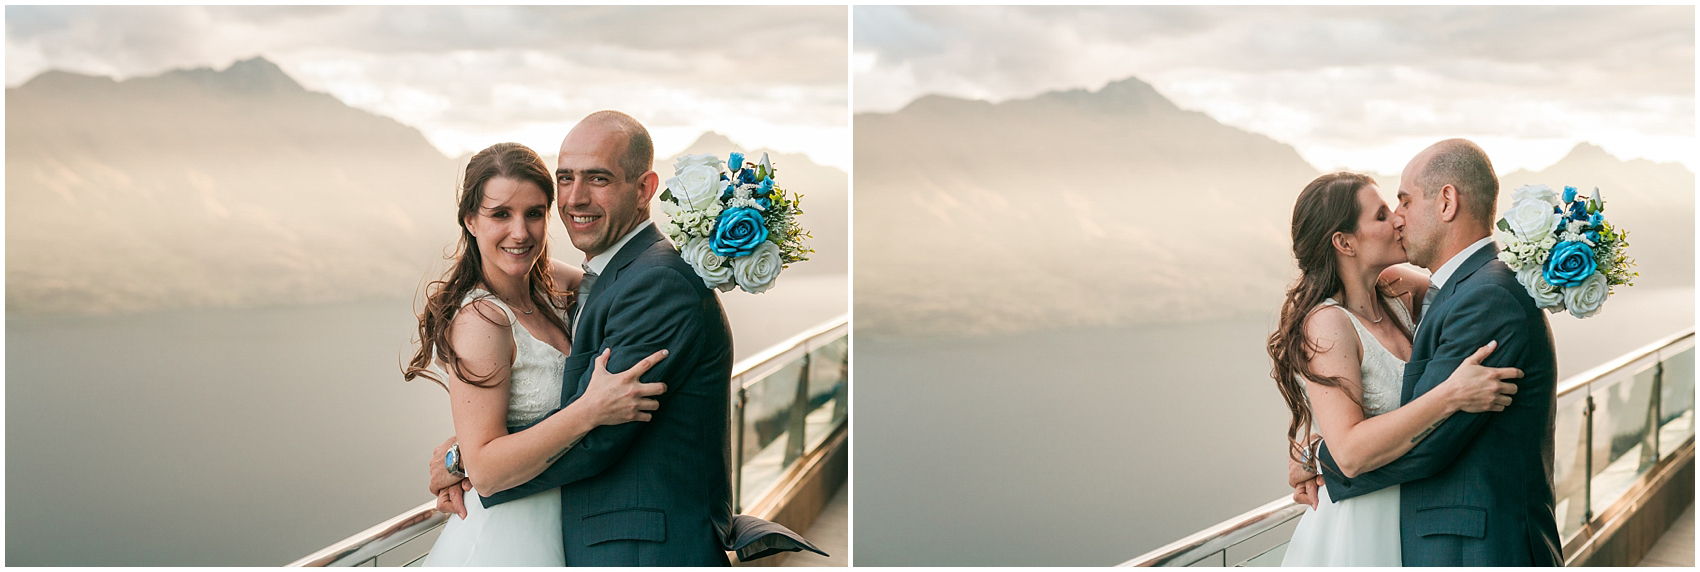 Queenstown New Zealand Wedding Photographer Bruna Fabricio Smetona Photo-0072.jpg